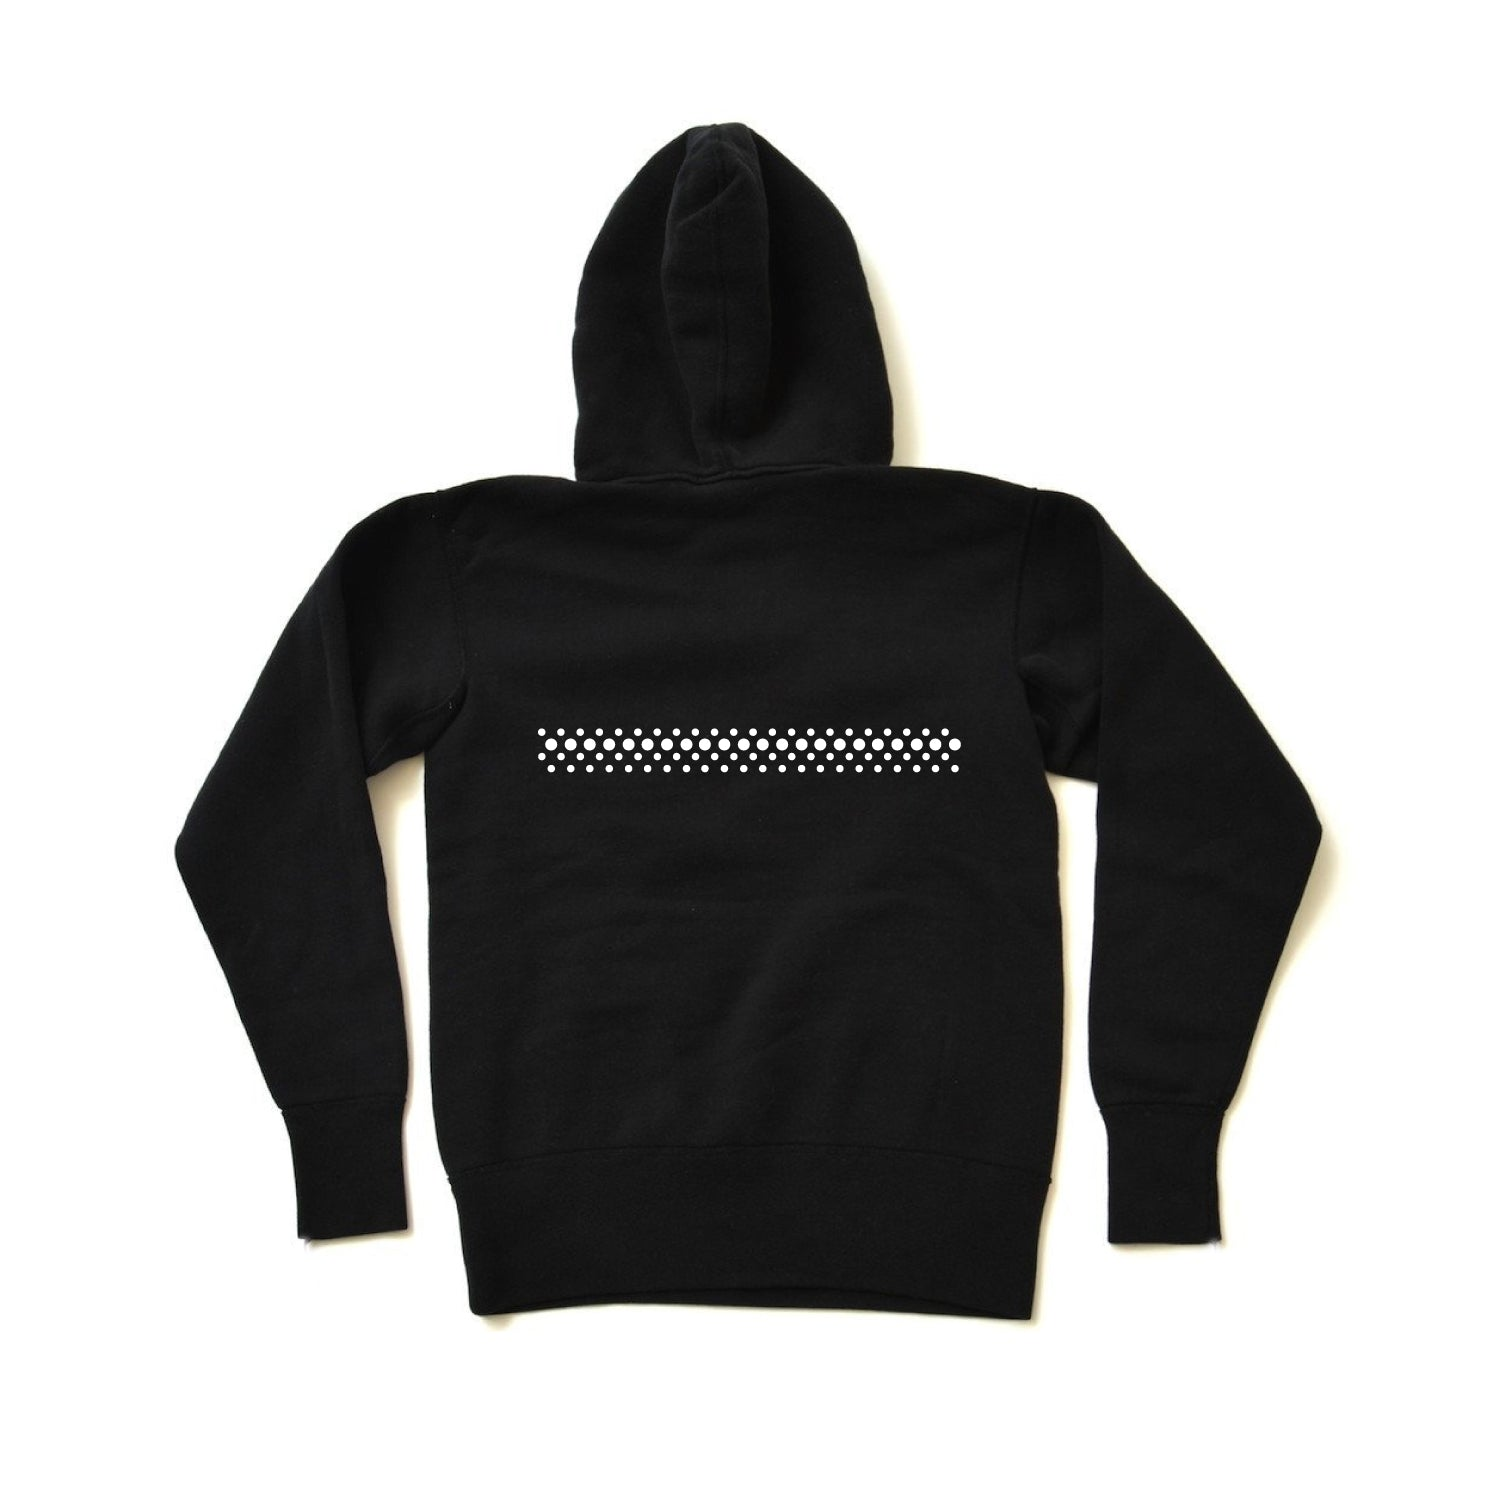 ISP DOT HOODIE (2X-LARGE ONLY)